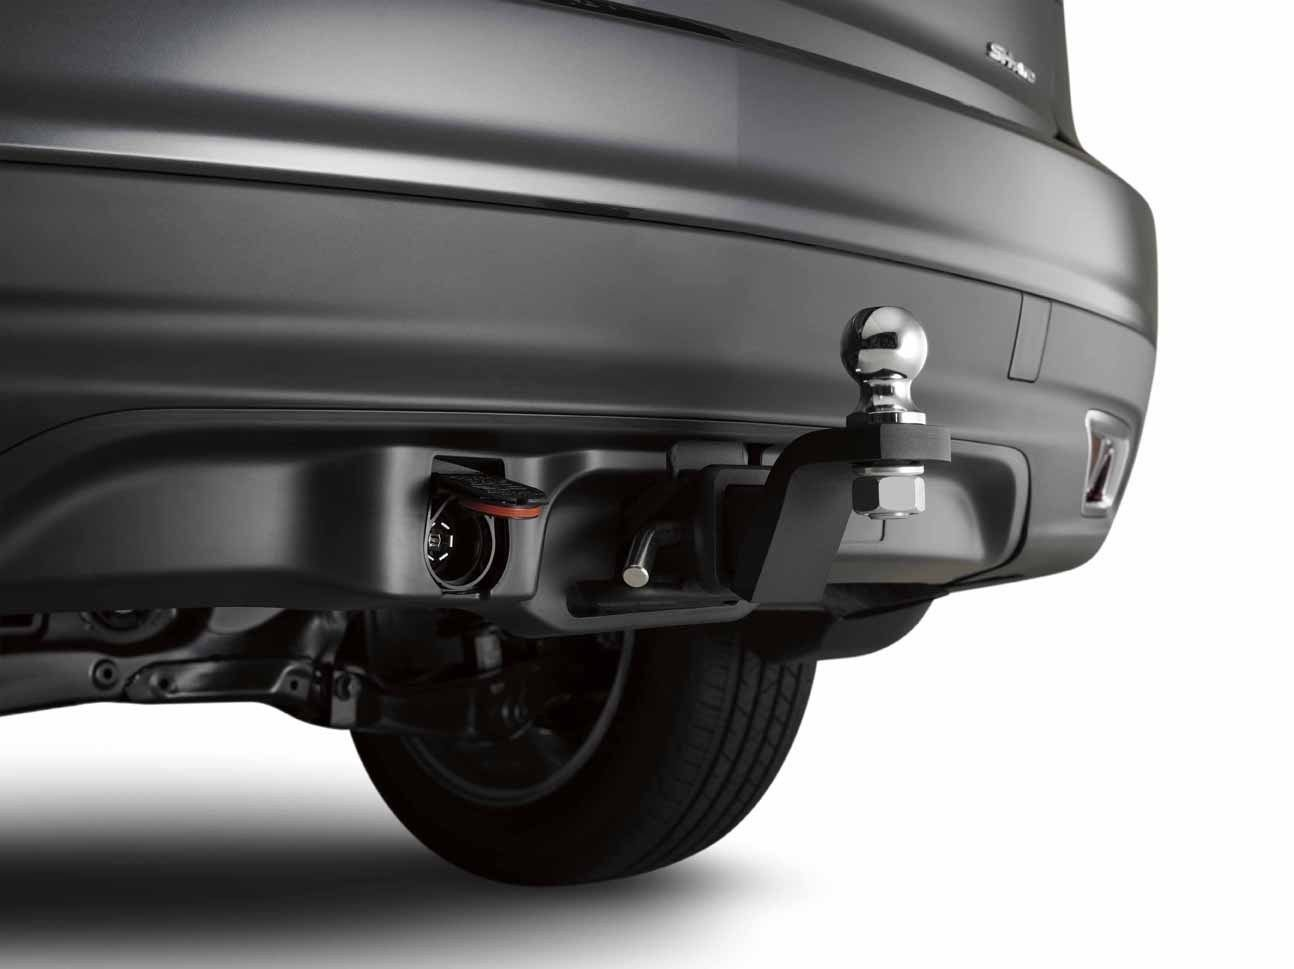 Get Quotations · ACURA OEM FACTORY TRAILER HITCH AND HARNESS 2014-2016 MDX